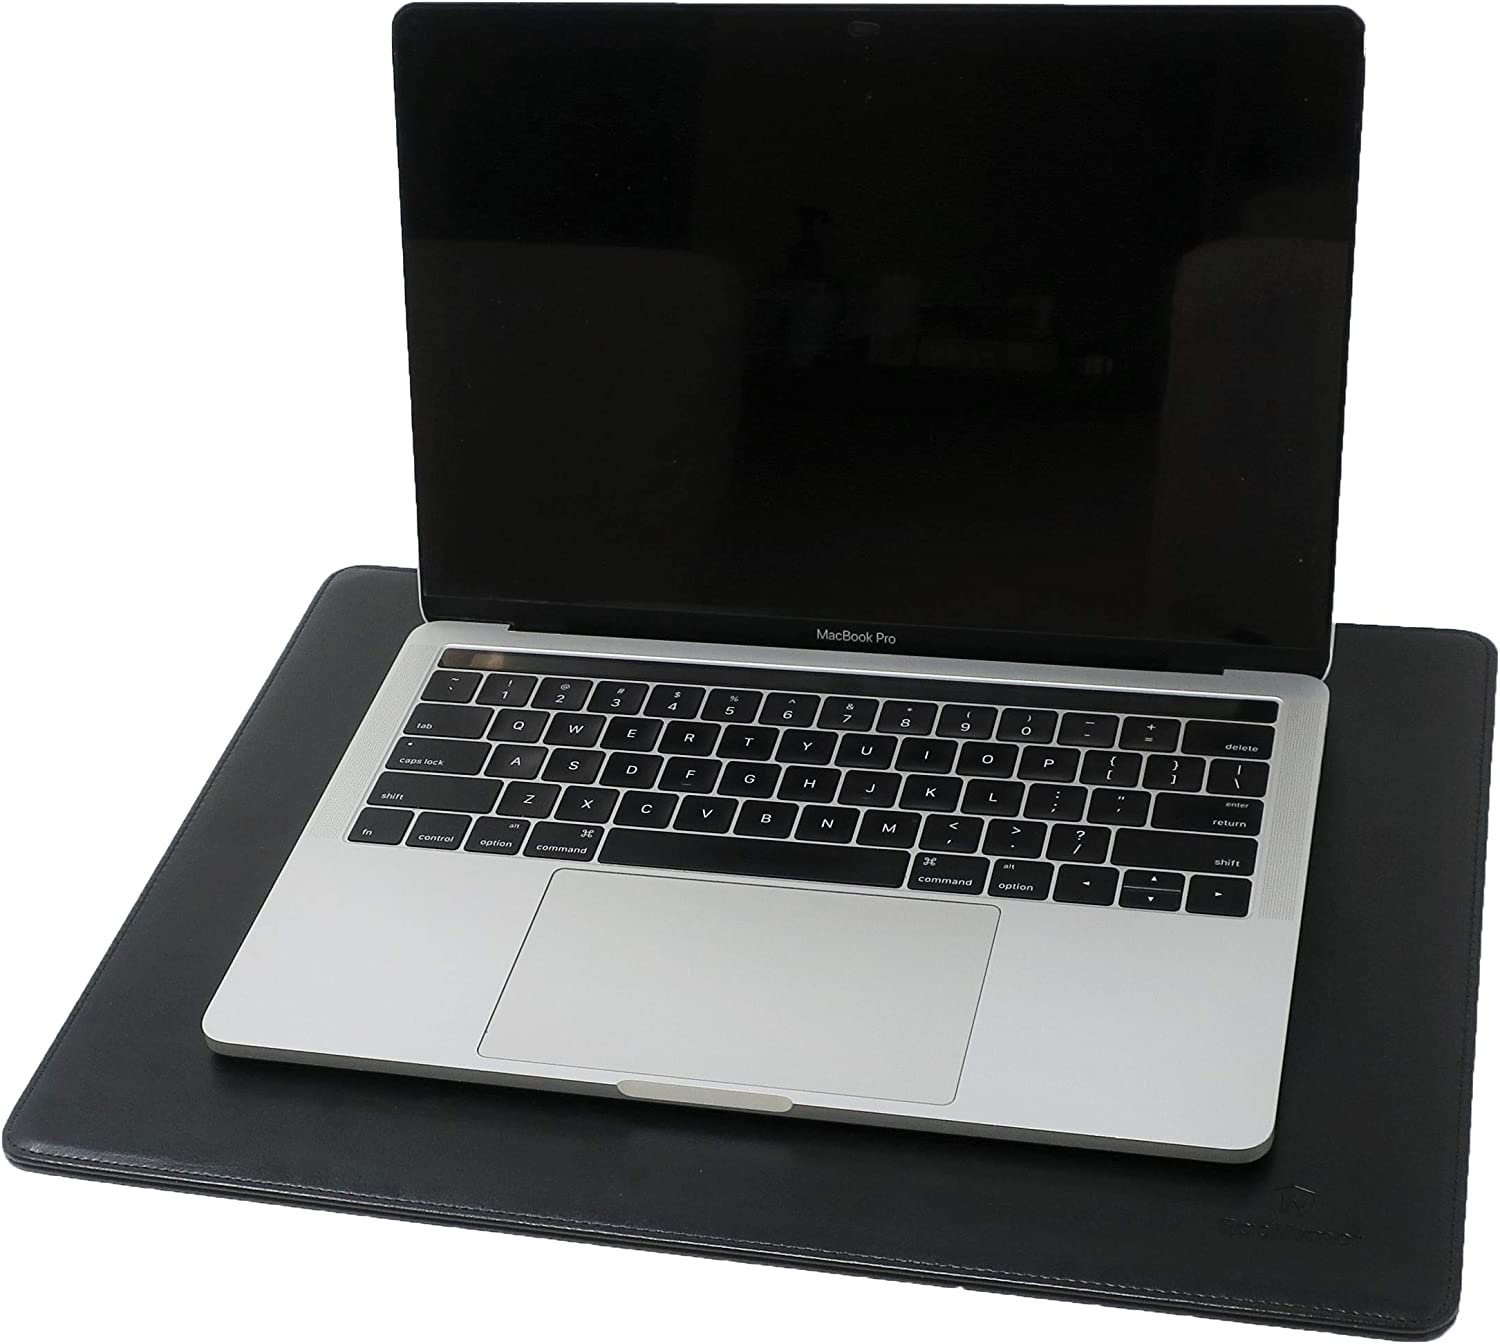 RadiArmor Anti-Radiation Laptop and Surface Pad – EMF Blocking Liner Reduces High Frequency Radio and Electric Fields by 99% (Black)